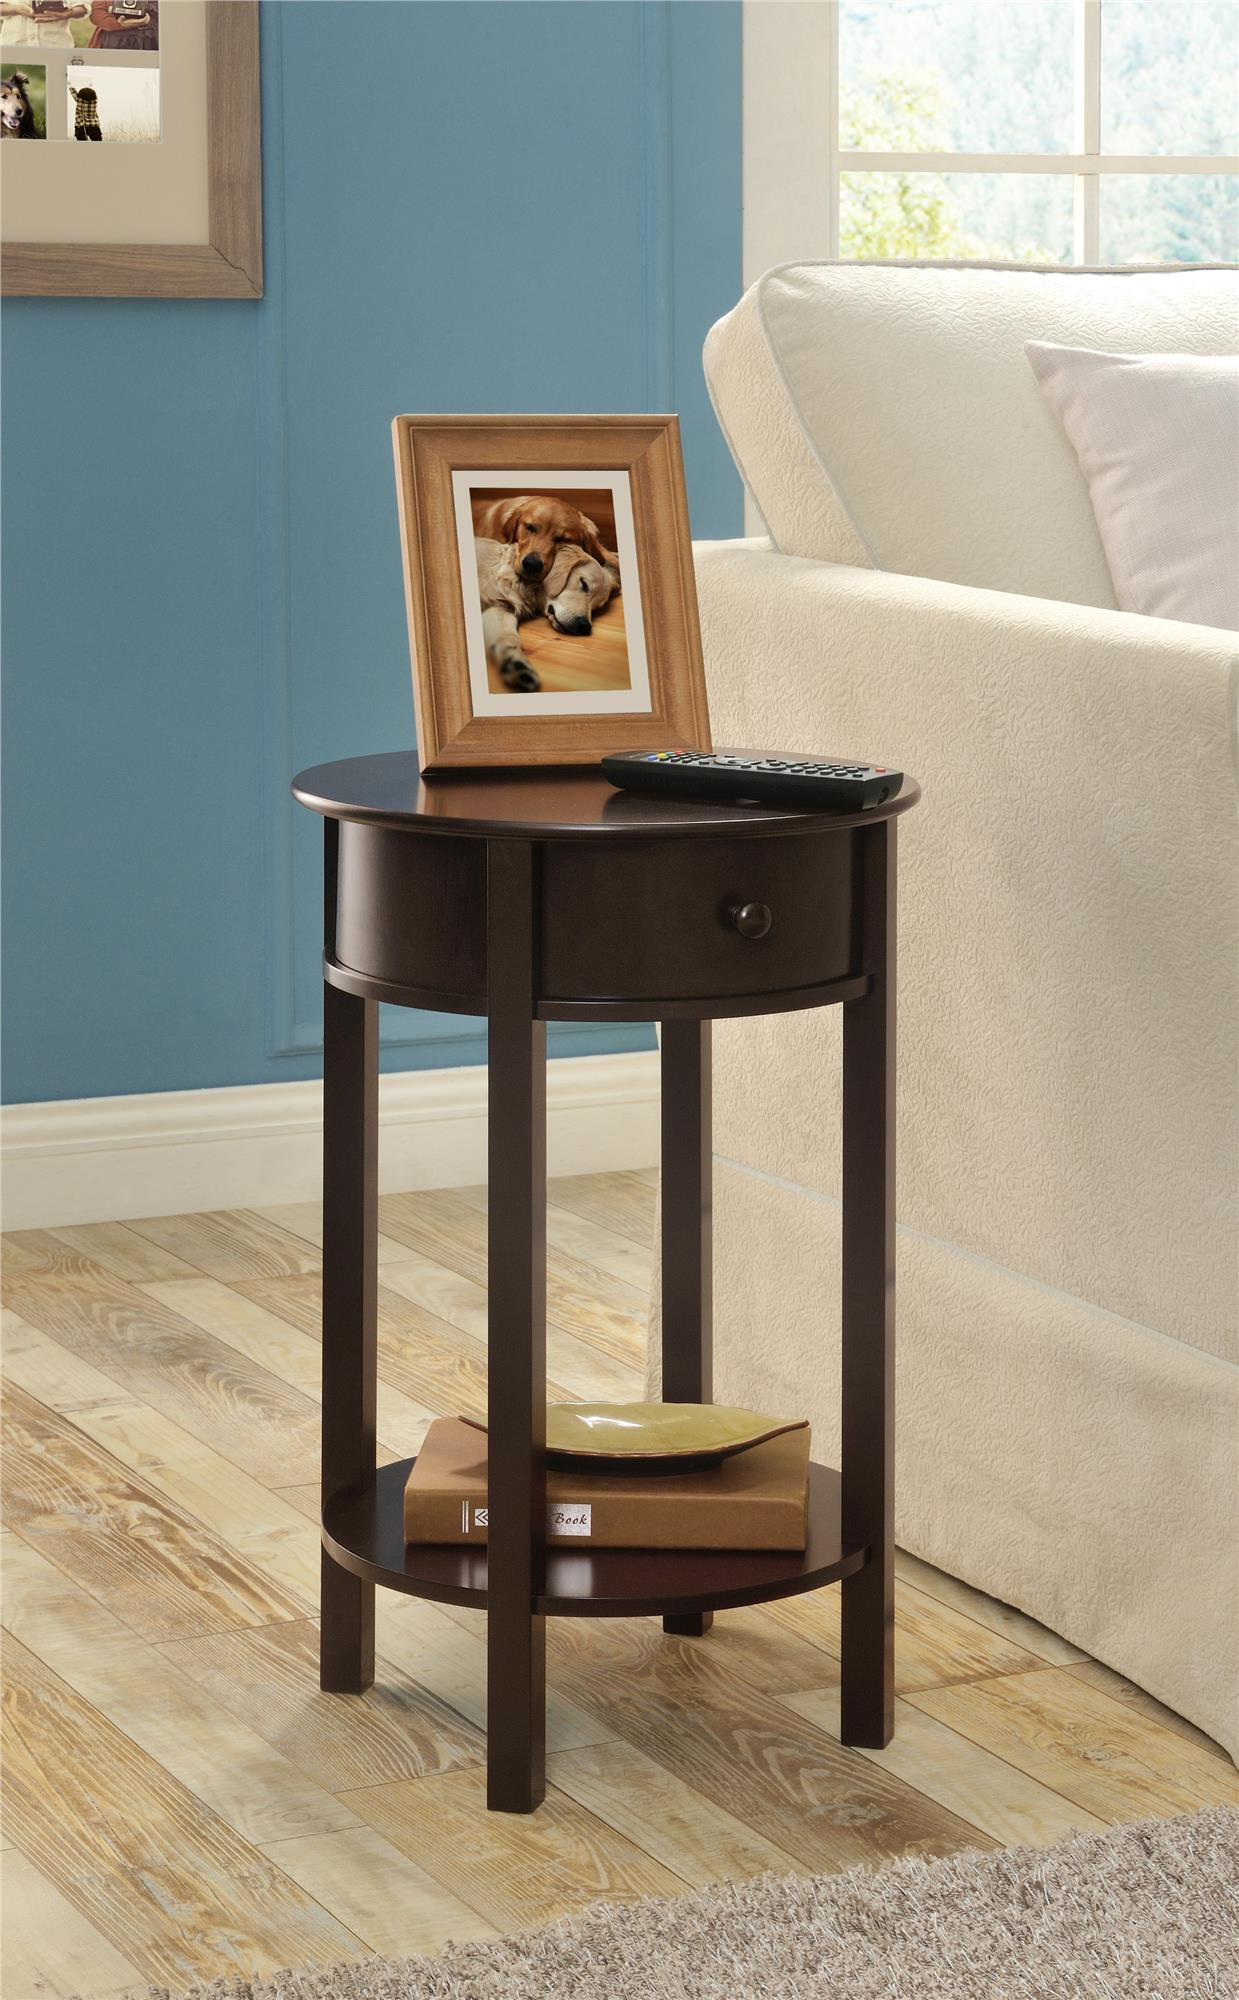 ameriwood home tipton round accent table espresso with storage pier imports outdoor cushions metal nightstand jofran charging station square tiffany lamp furniture end tables thin